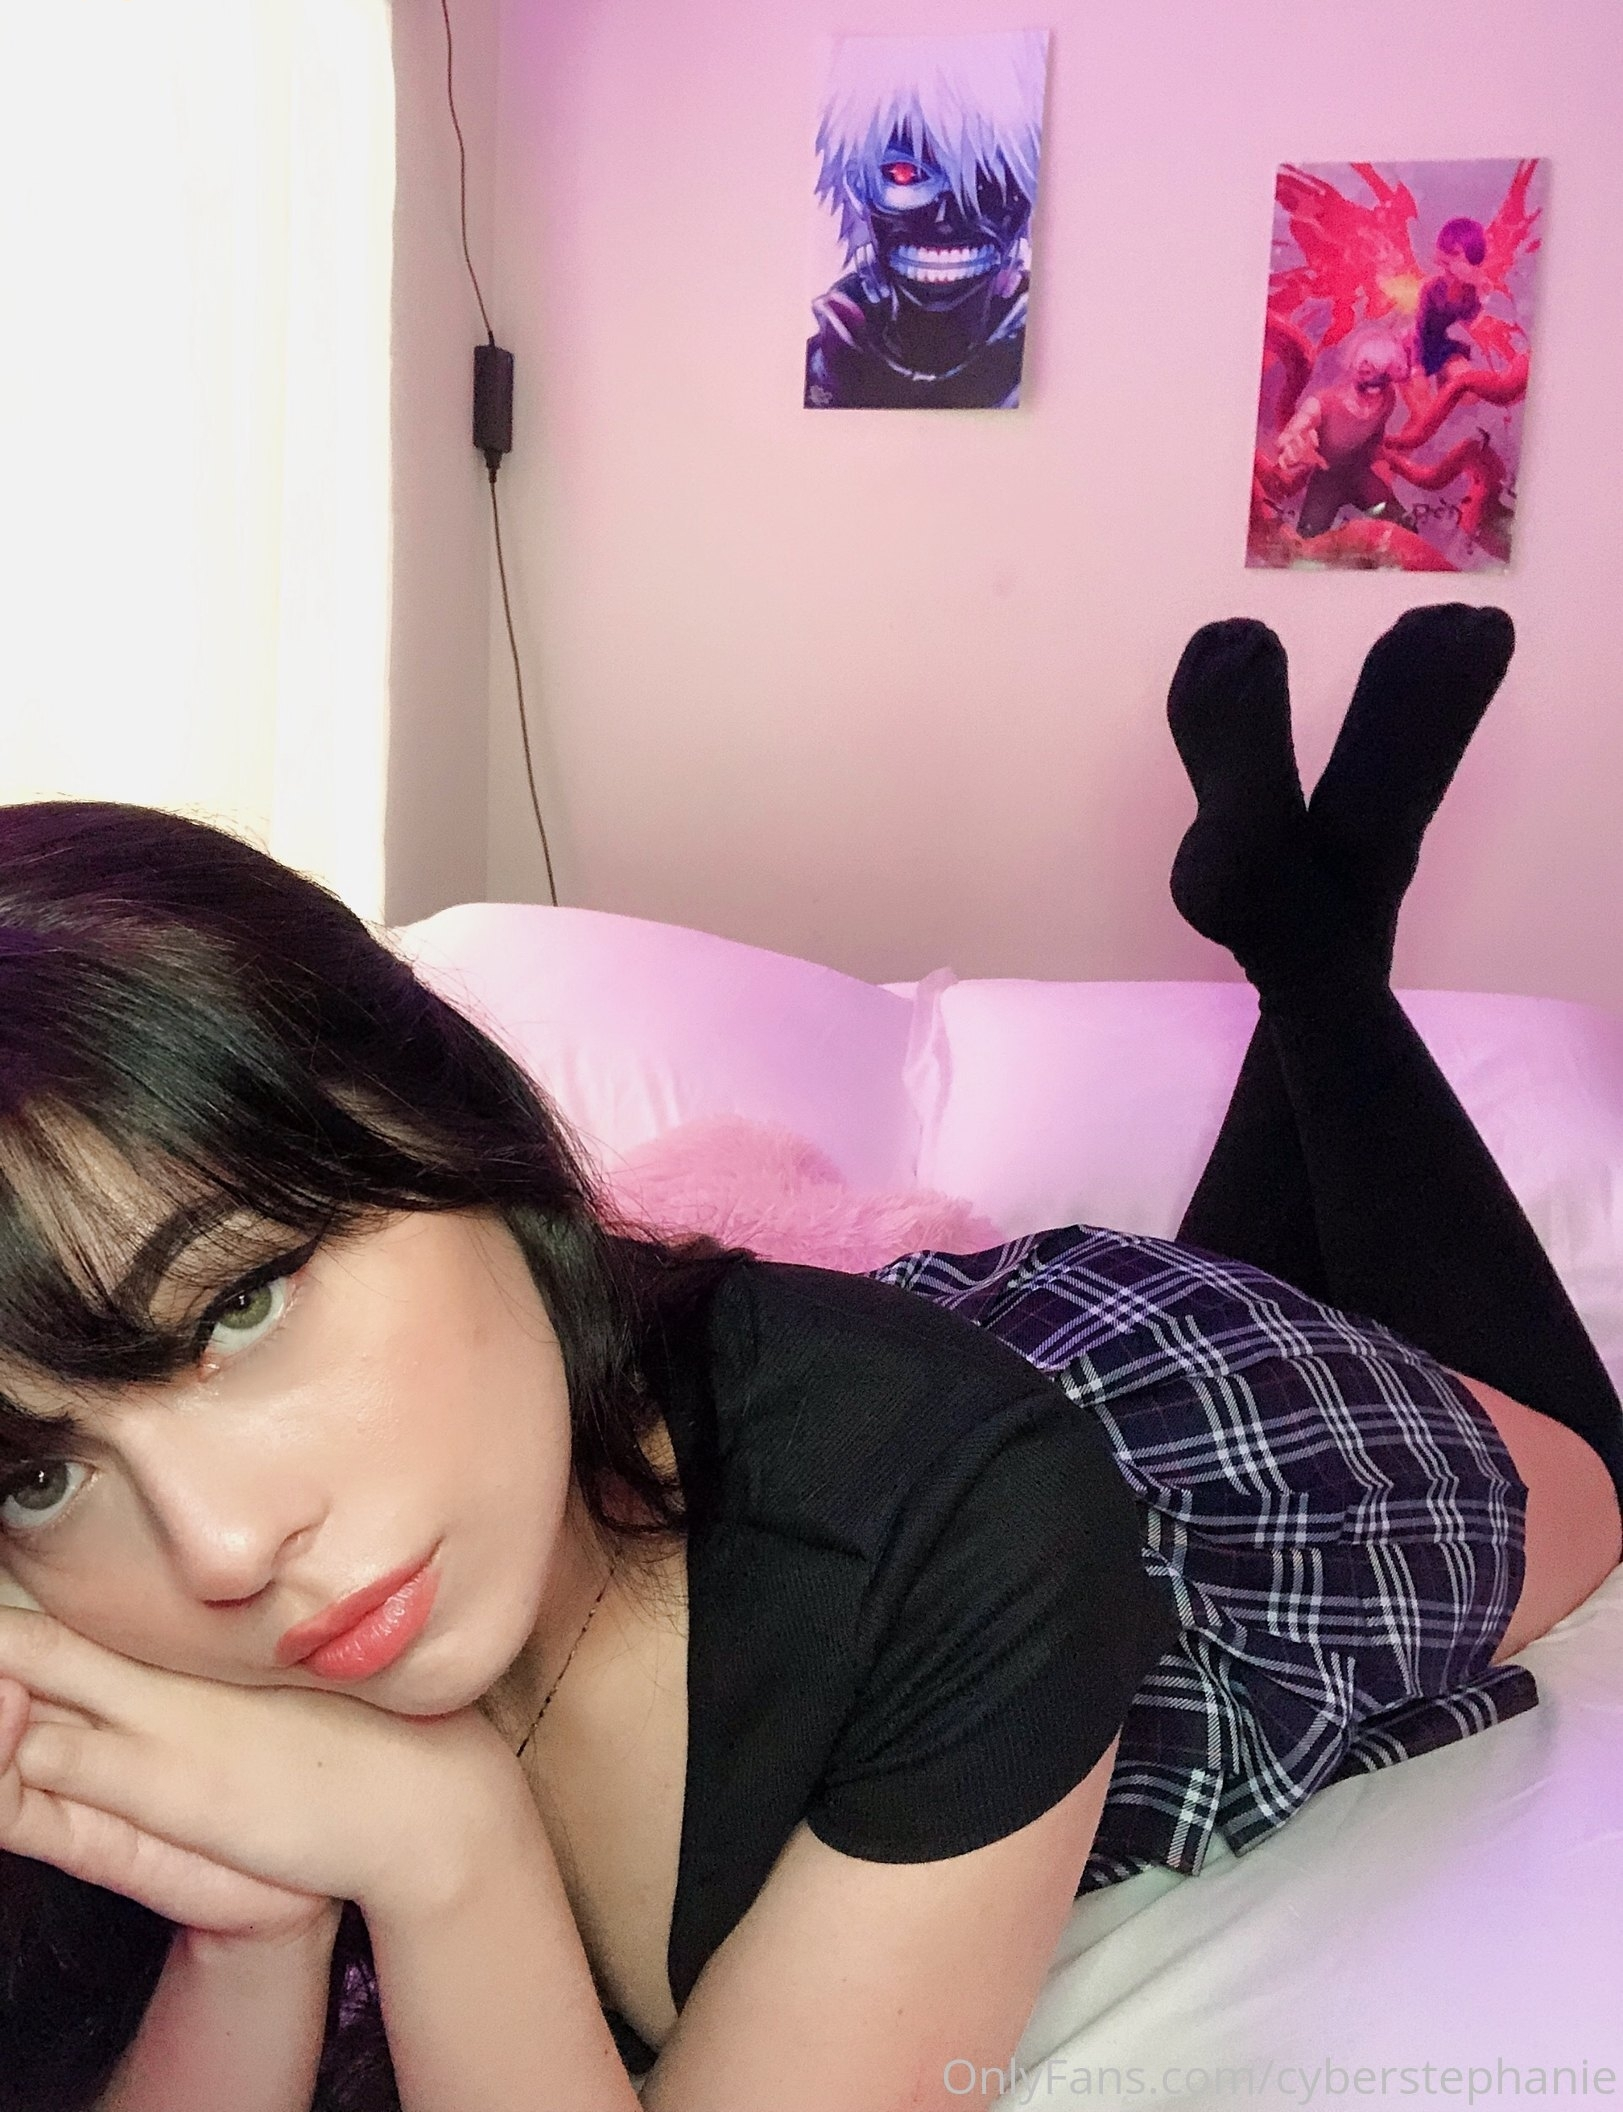 Cyberstephanie Onlyfans Nude Leaked Photos 0184